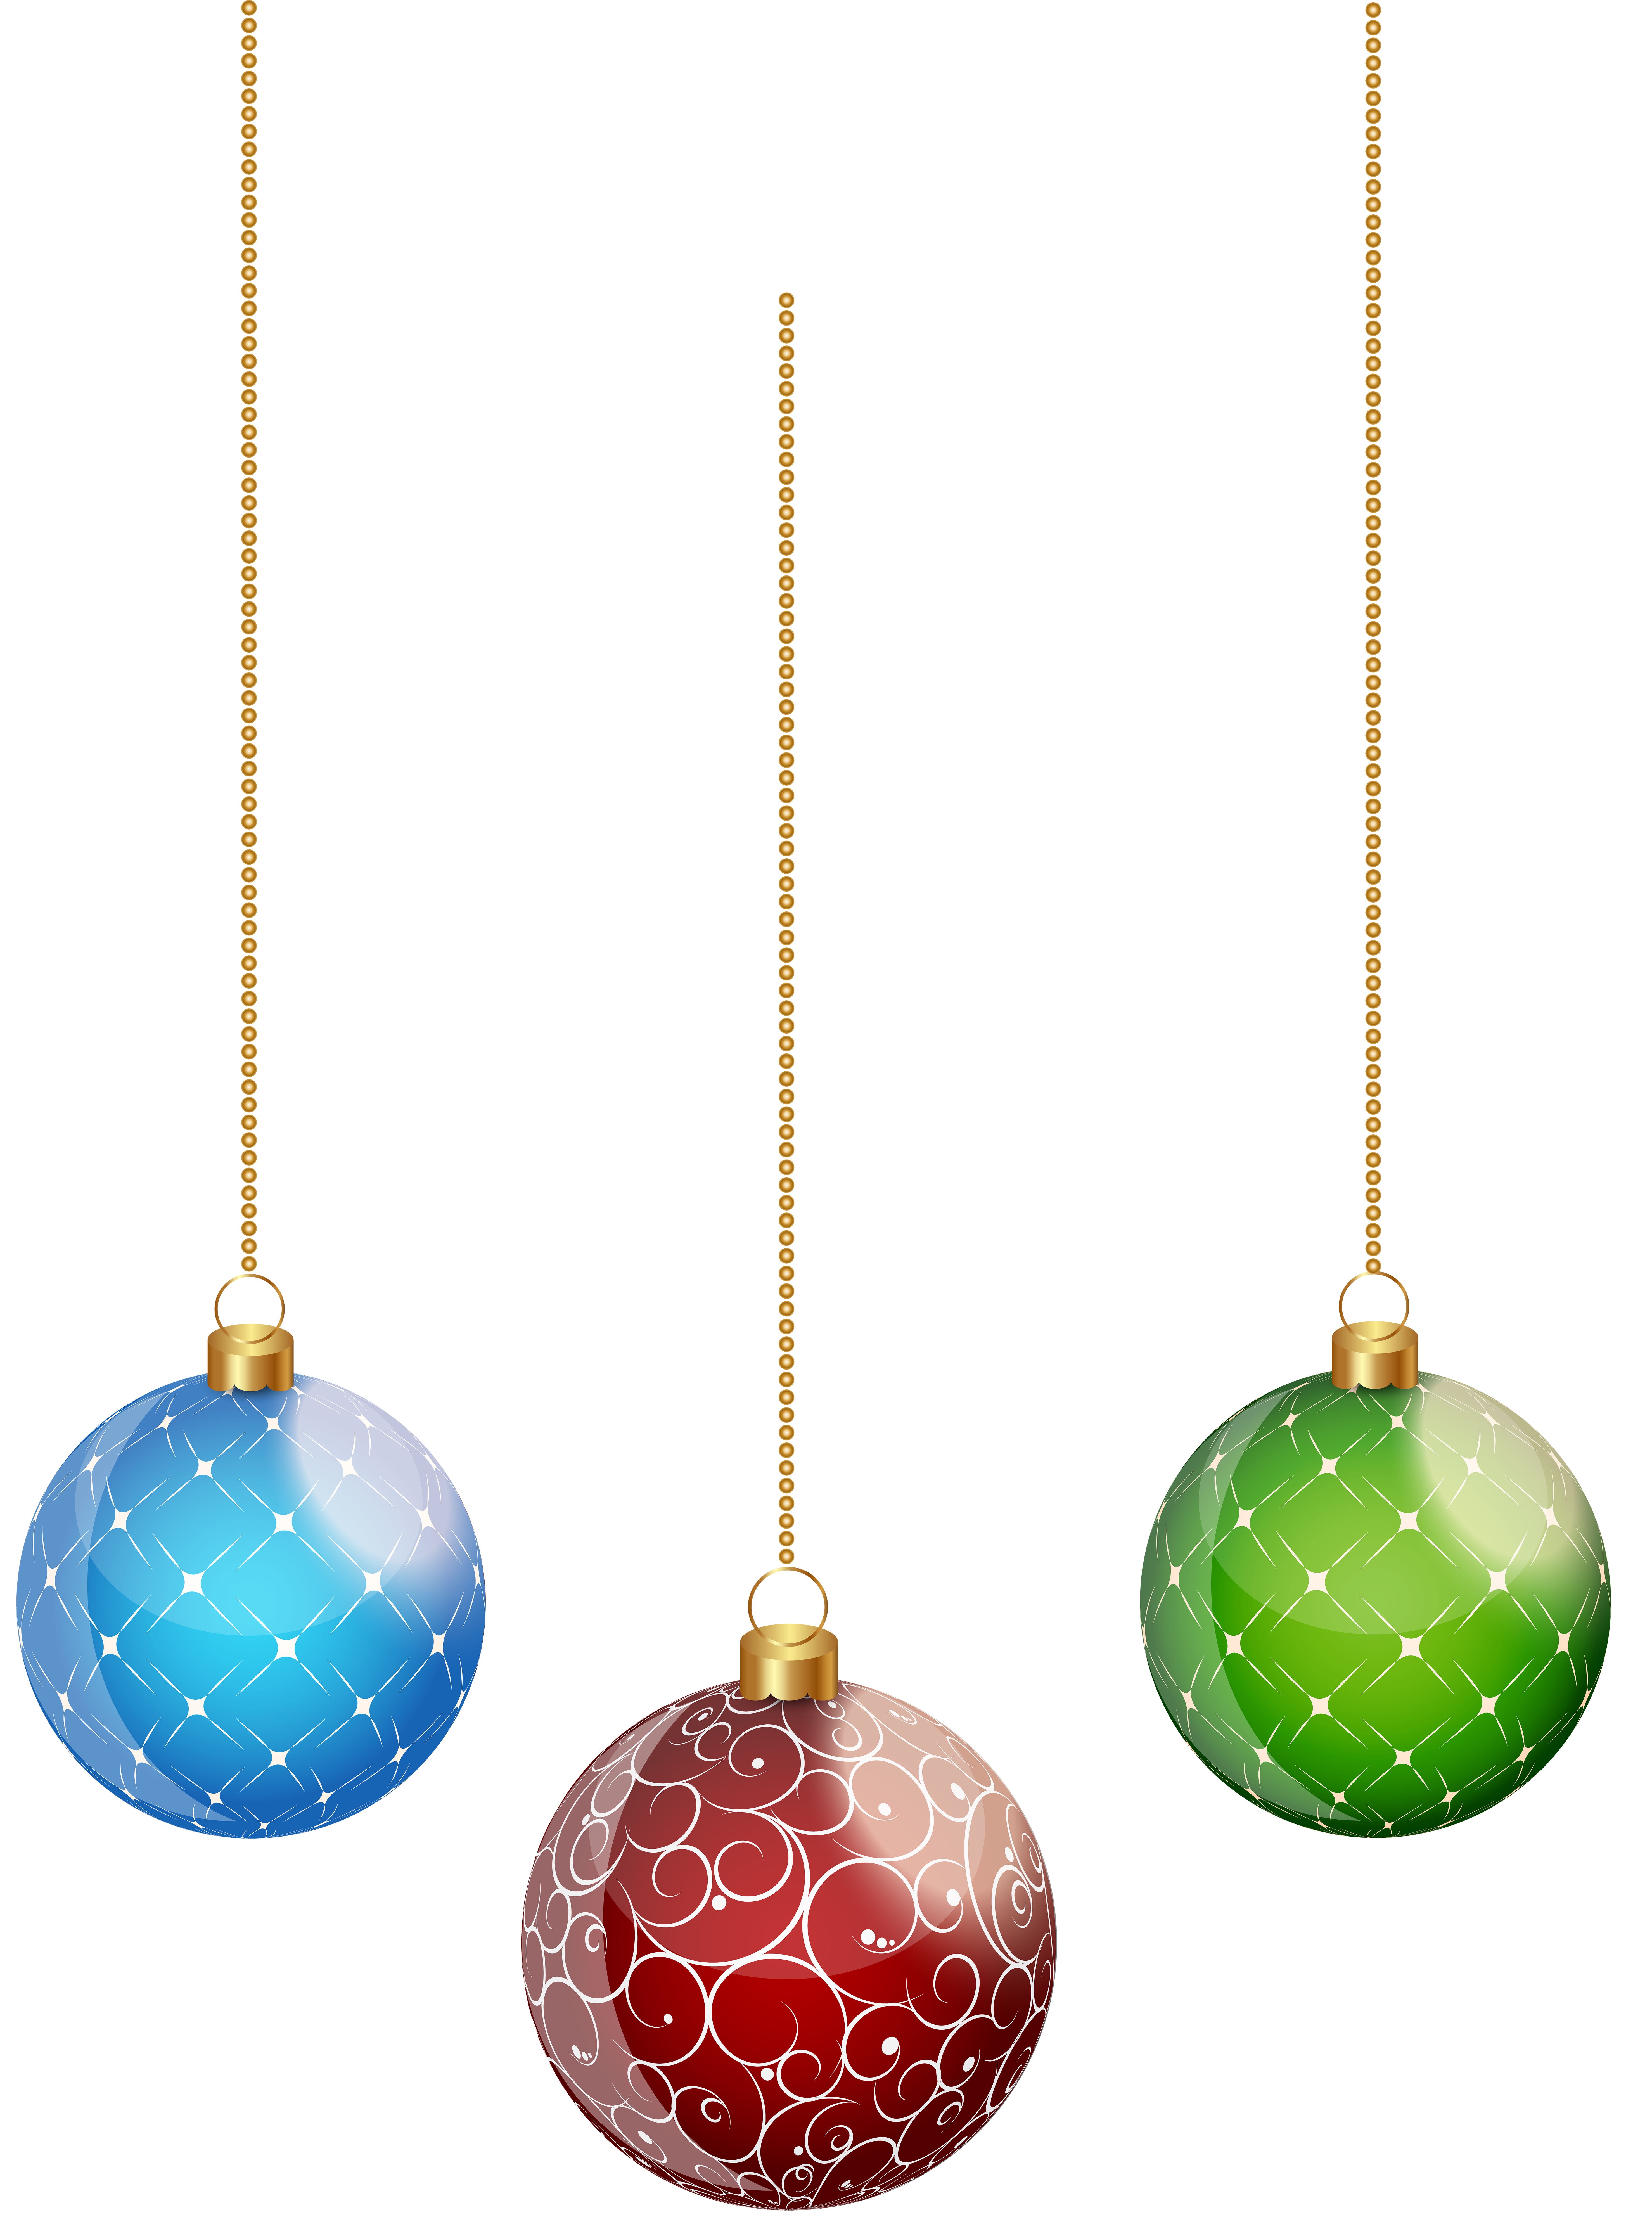 Christmas Ball Clipart.Christmas Ball Clipart At Getdrawings Com Free For